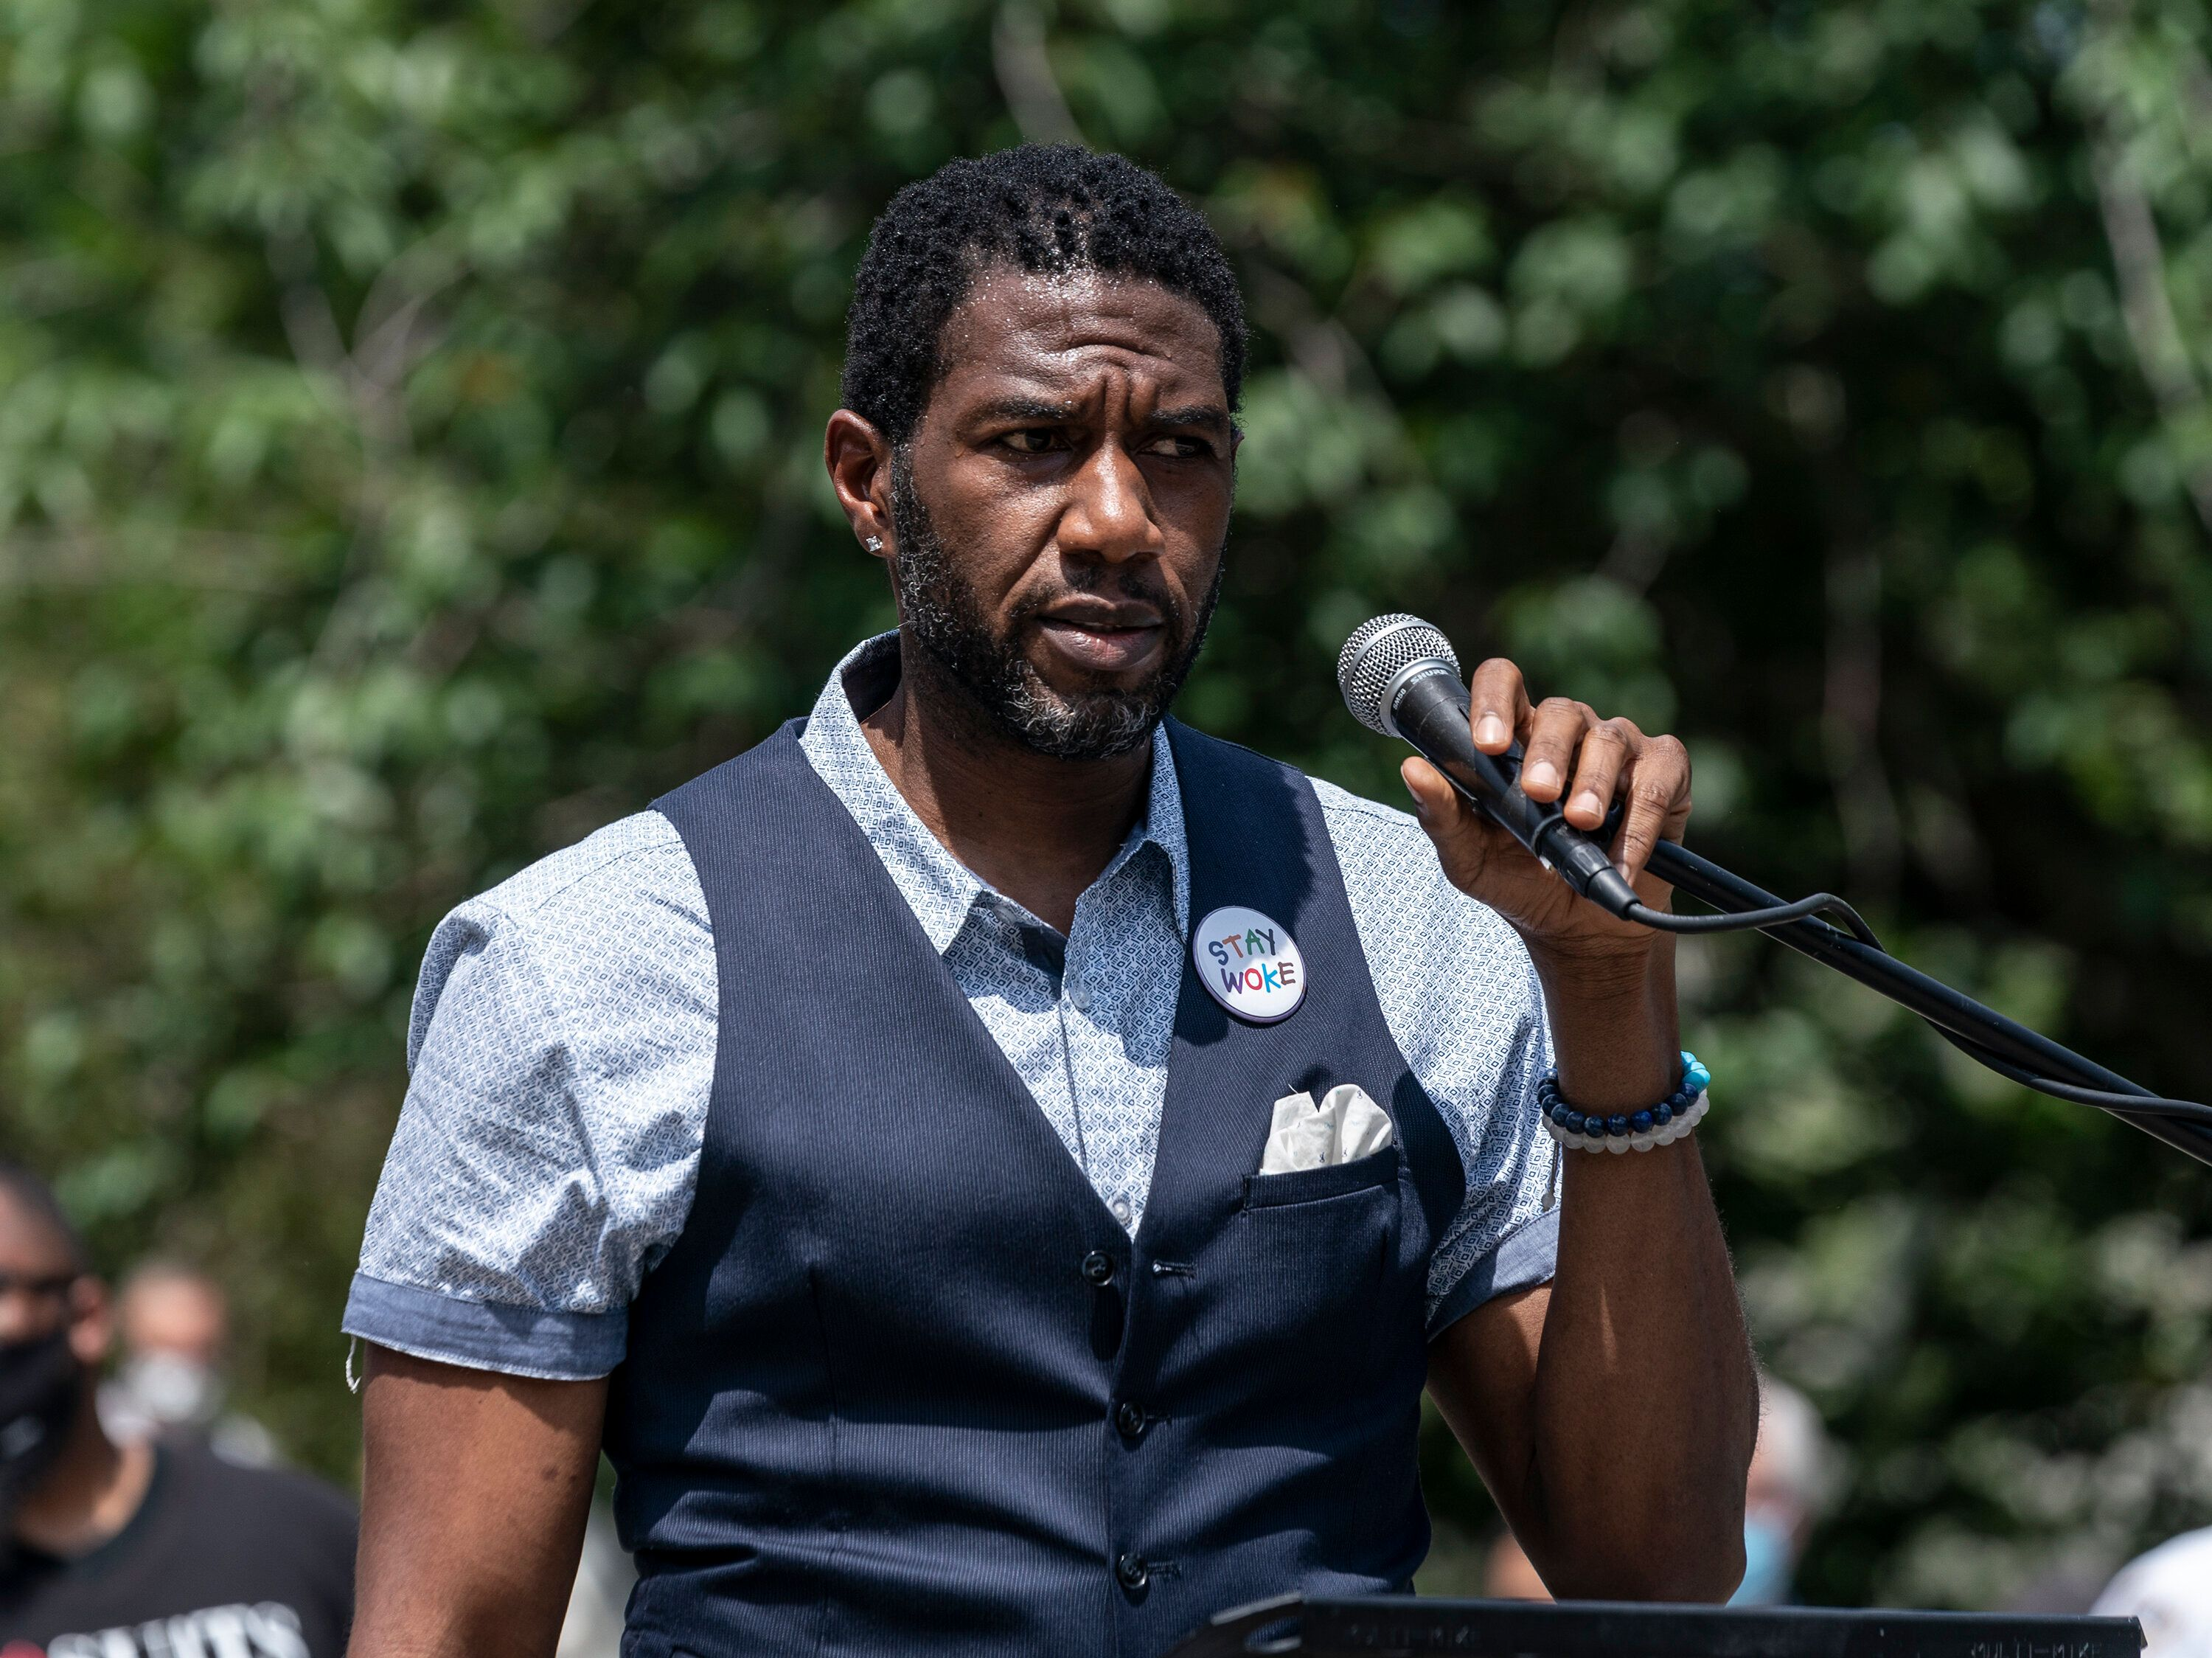 NYC Public Advocate Jumaane Williams, an outspoken critic of police misconduct, maintains that progressive politicians can ar